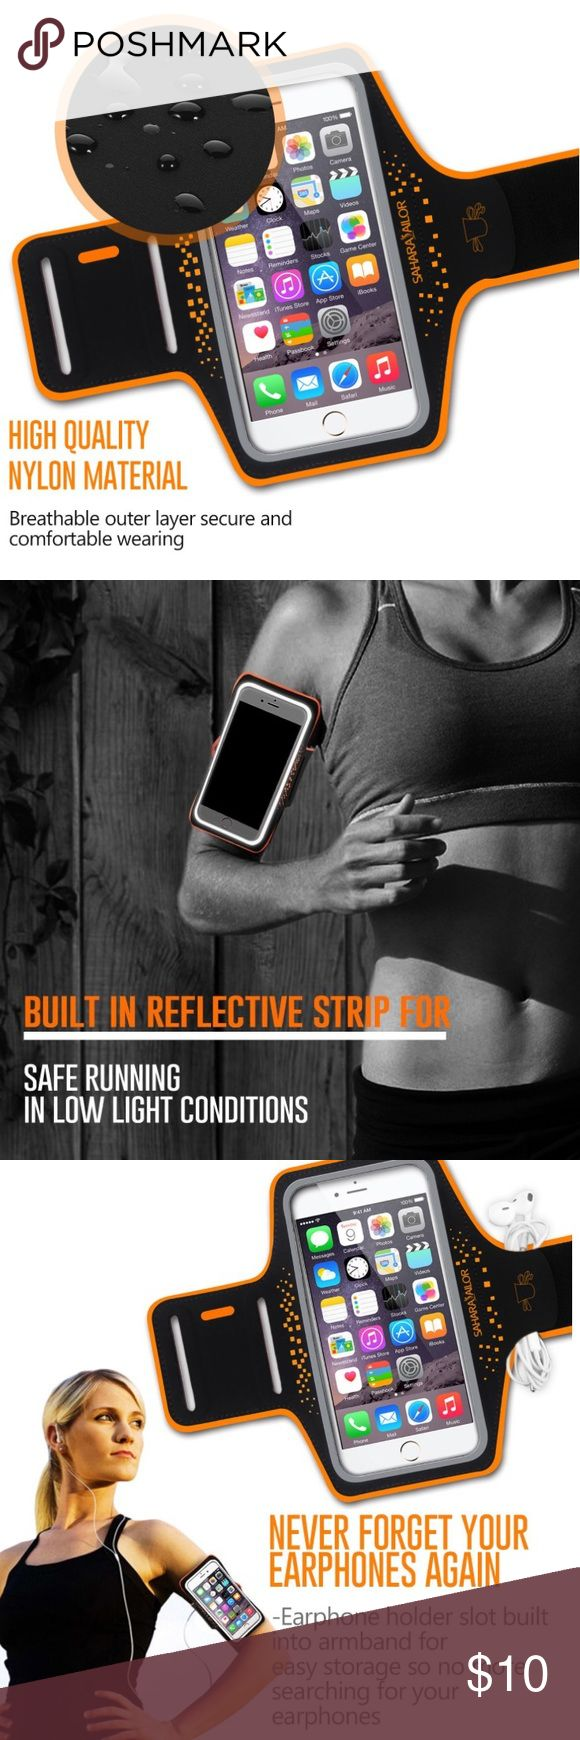 """💪🏼Fitness- Sports Armband High quality sweat-proof & stretch resistant neoprene material. Special reflective strip keeps you noticeable at night. Headphone cutouts allows you to fully enjoy the music or pick up the call while walking or running. Touch screen compatible. Supports a wide range of arm girth from 8"""" to 15"""". Lifetime Warranty. Tagged for exposure ✅Great deal!✅ Save with bundle discounts💰 I also offer customized bundles🛍  Interested? Leave a comment below 👇🏼…"""